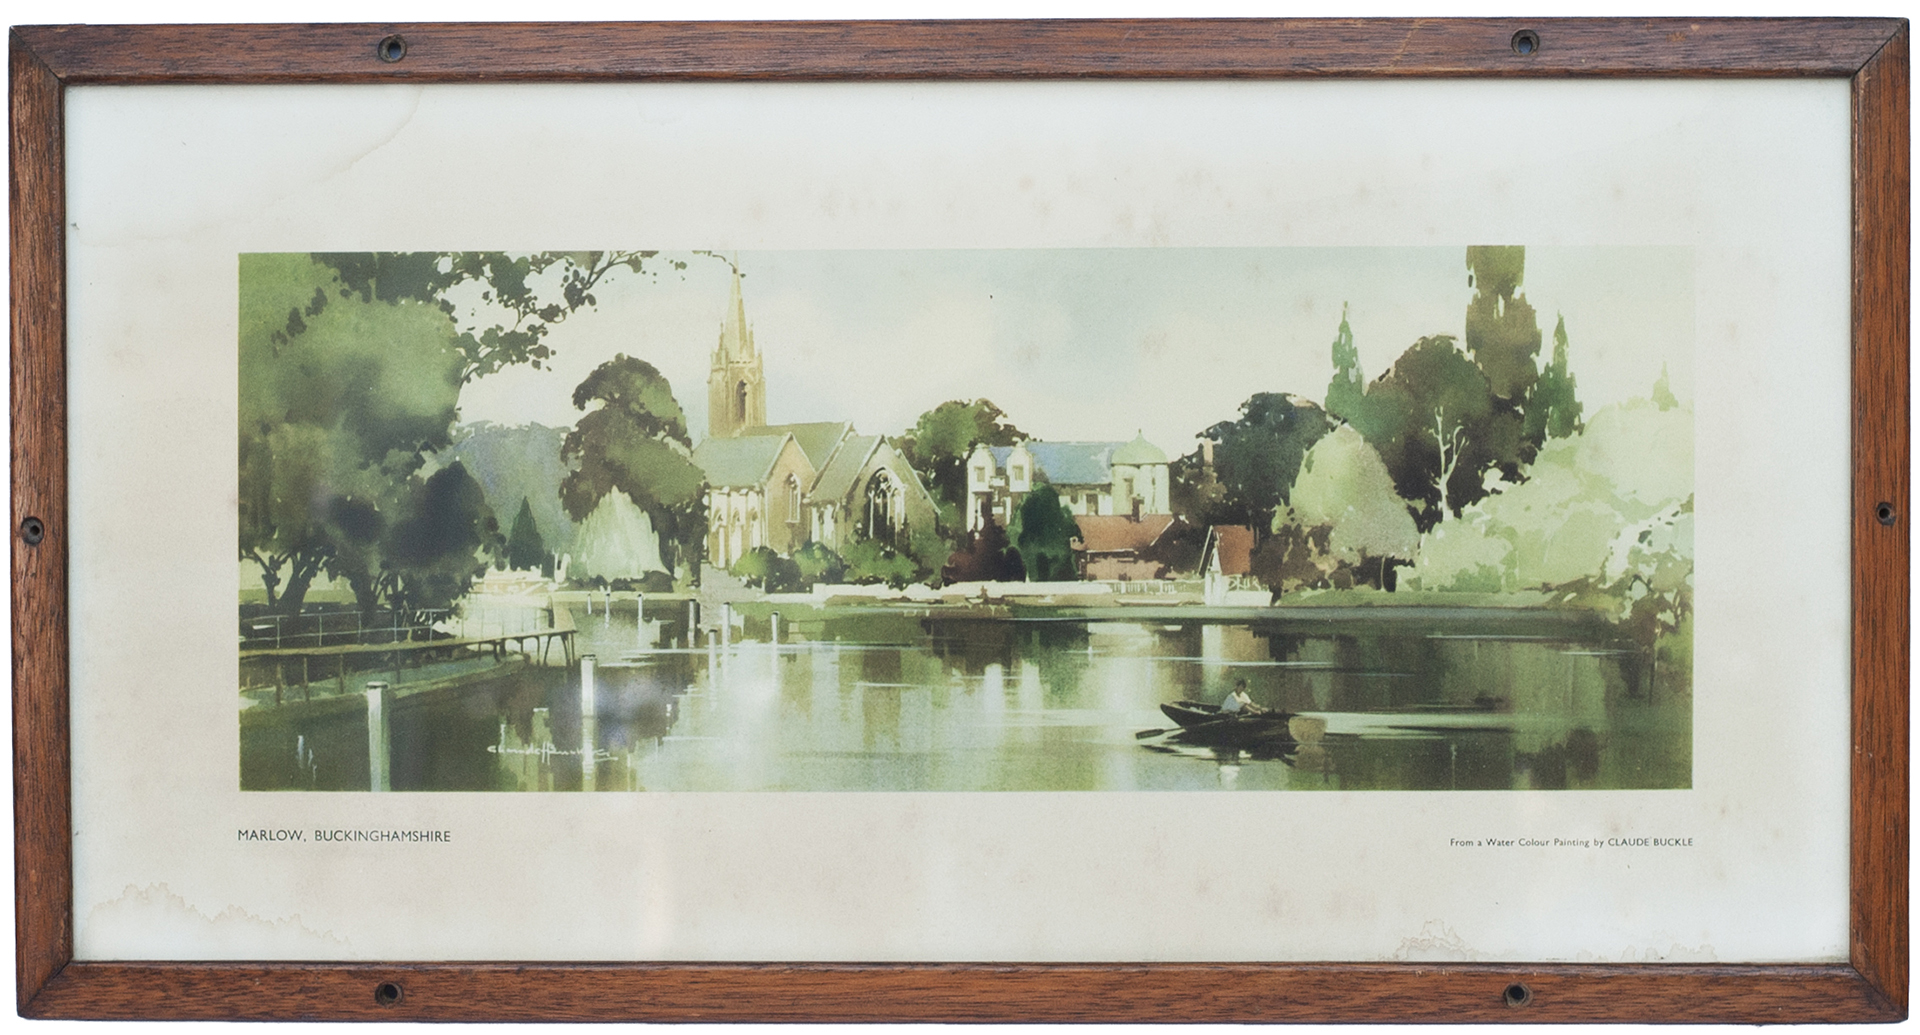 Carriage Print MARLOW, BUCKINGHAMSHIRE From An